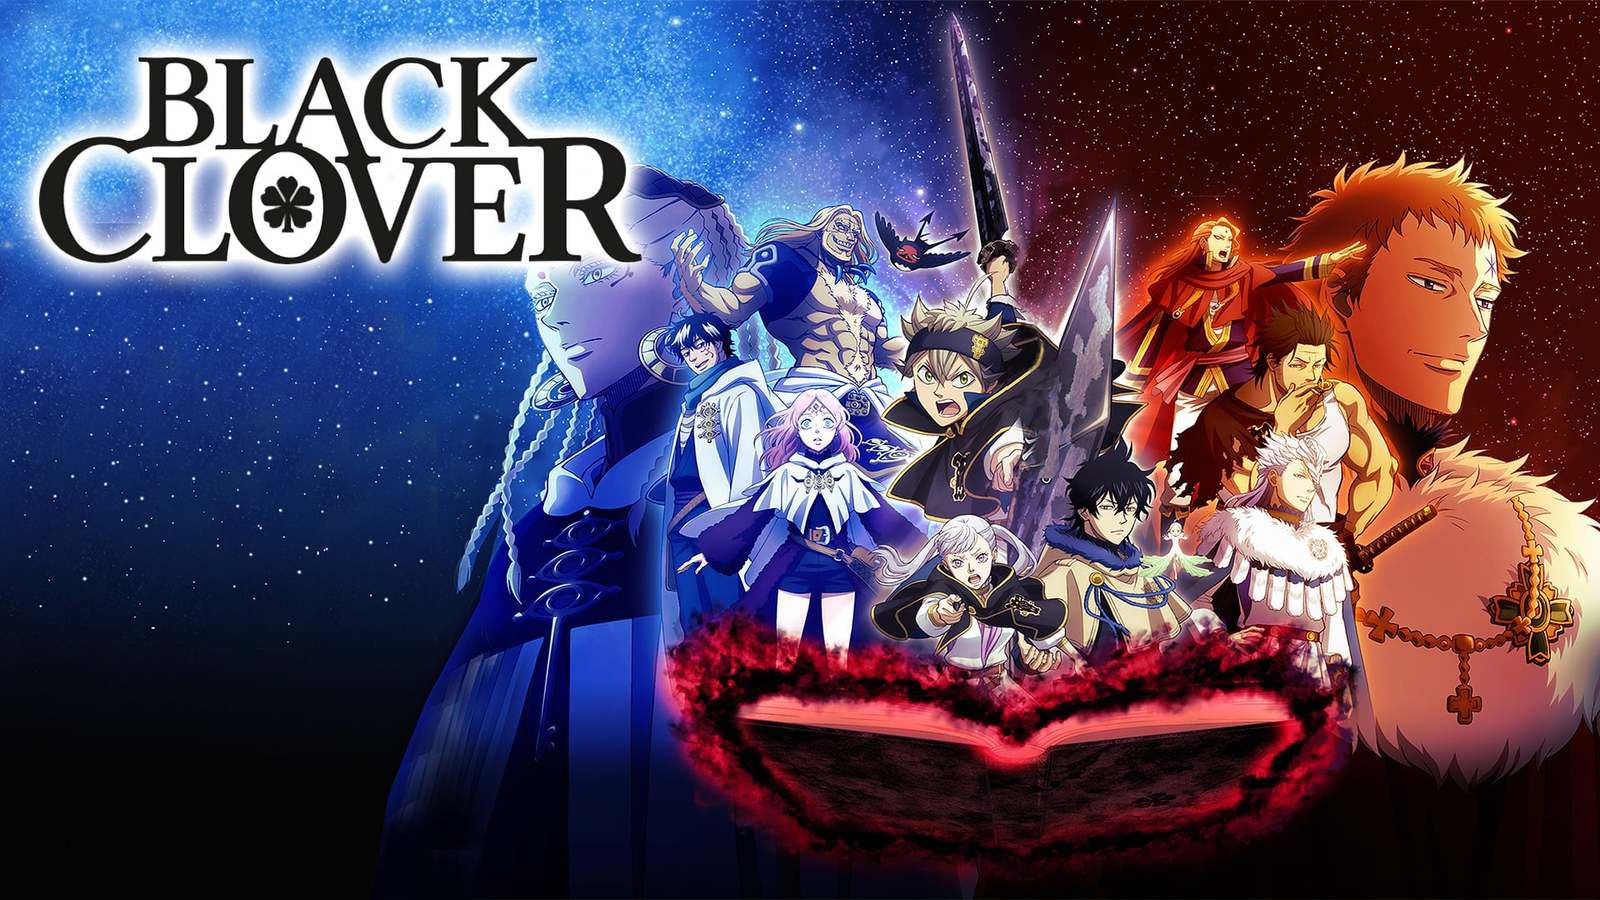 Black Clover Episode 159 Watch Online with English Subtitles